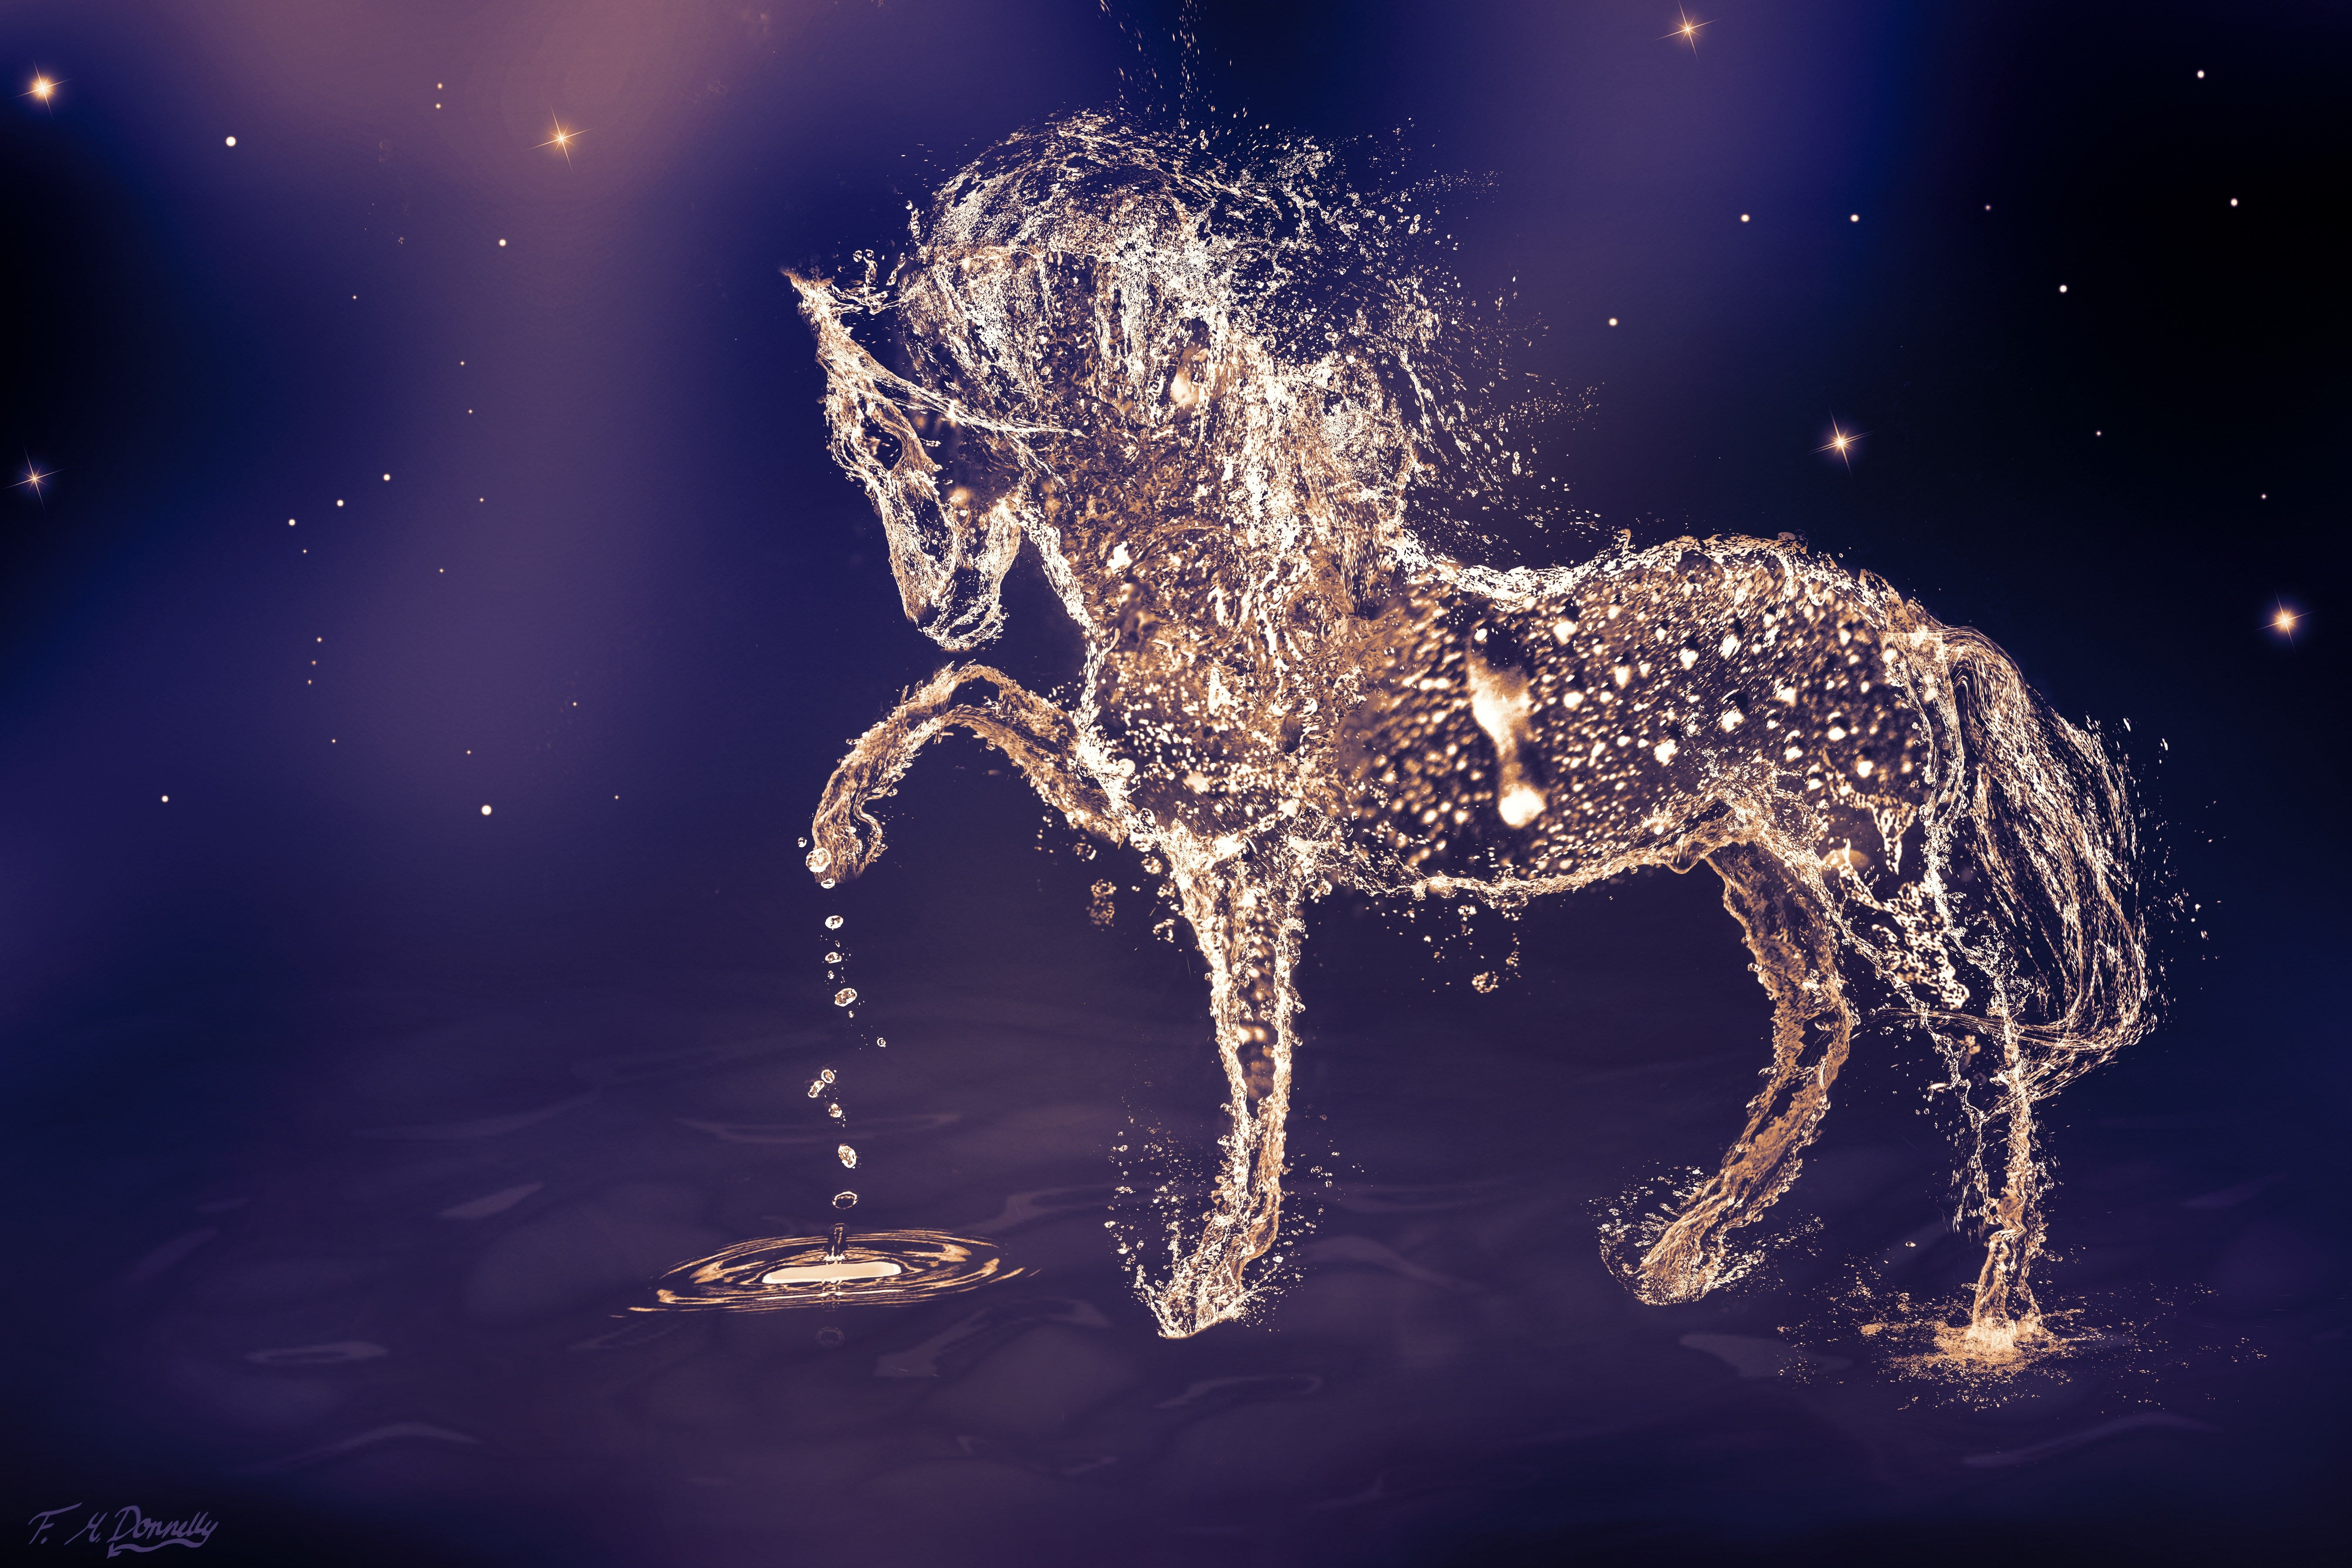 Horse Wallpaper Hd Pack Horse Category Fond D Ecran Ordinateur Fond D Ecran Abstrait Fond D Ecran Telephone